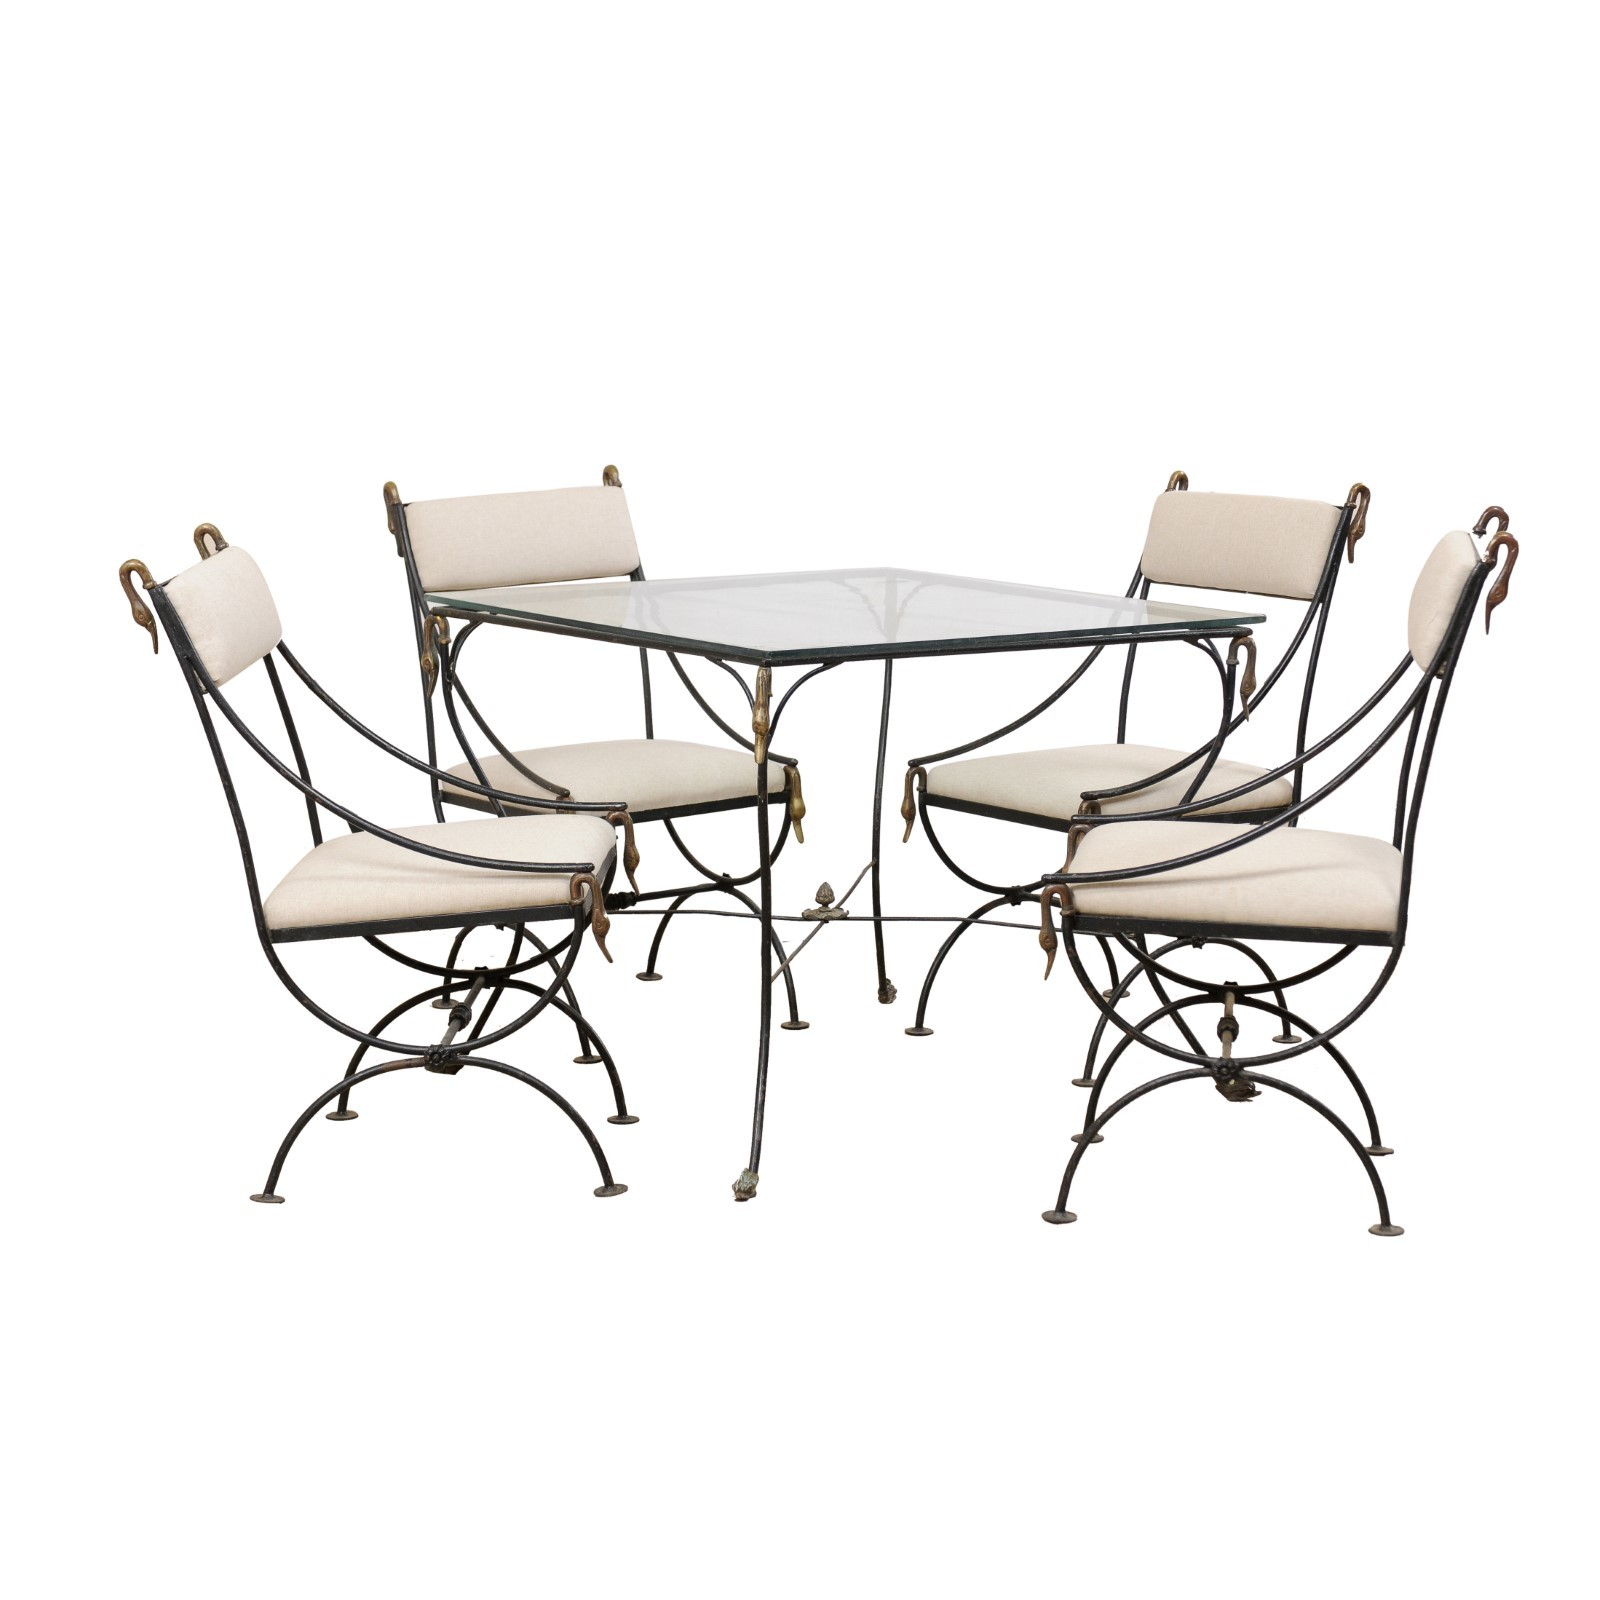 Italian Glass & Iron Table w/ Four Chairs